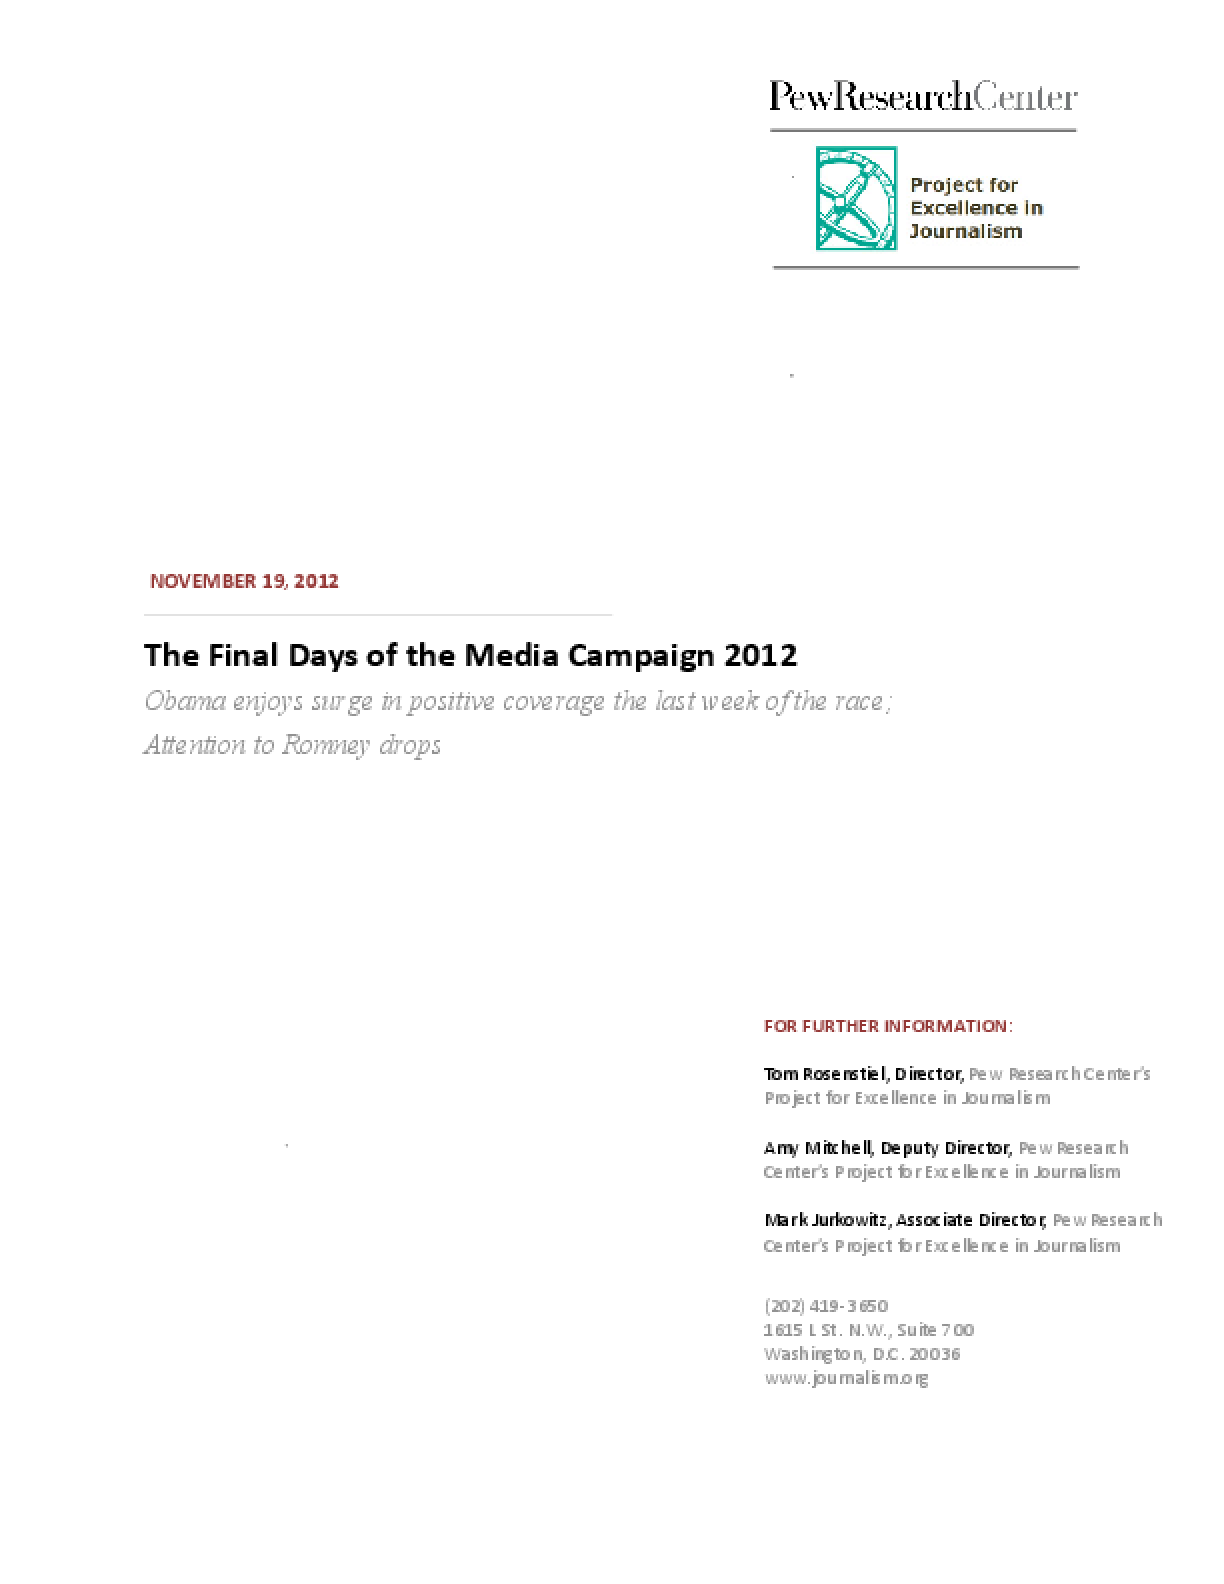 The Final Days of the Media Campaign 2012